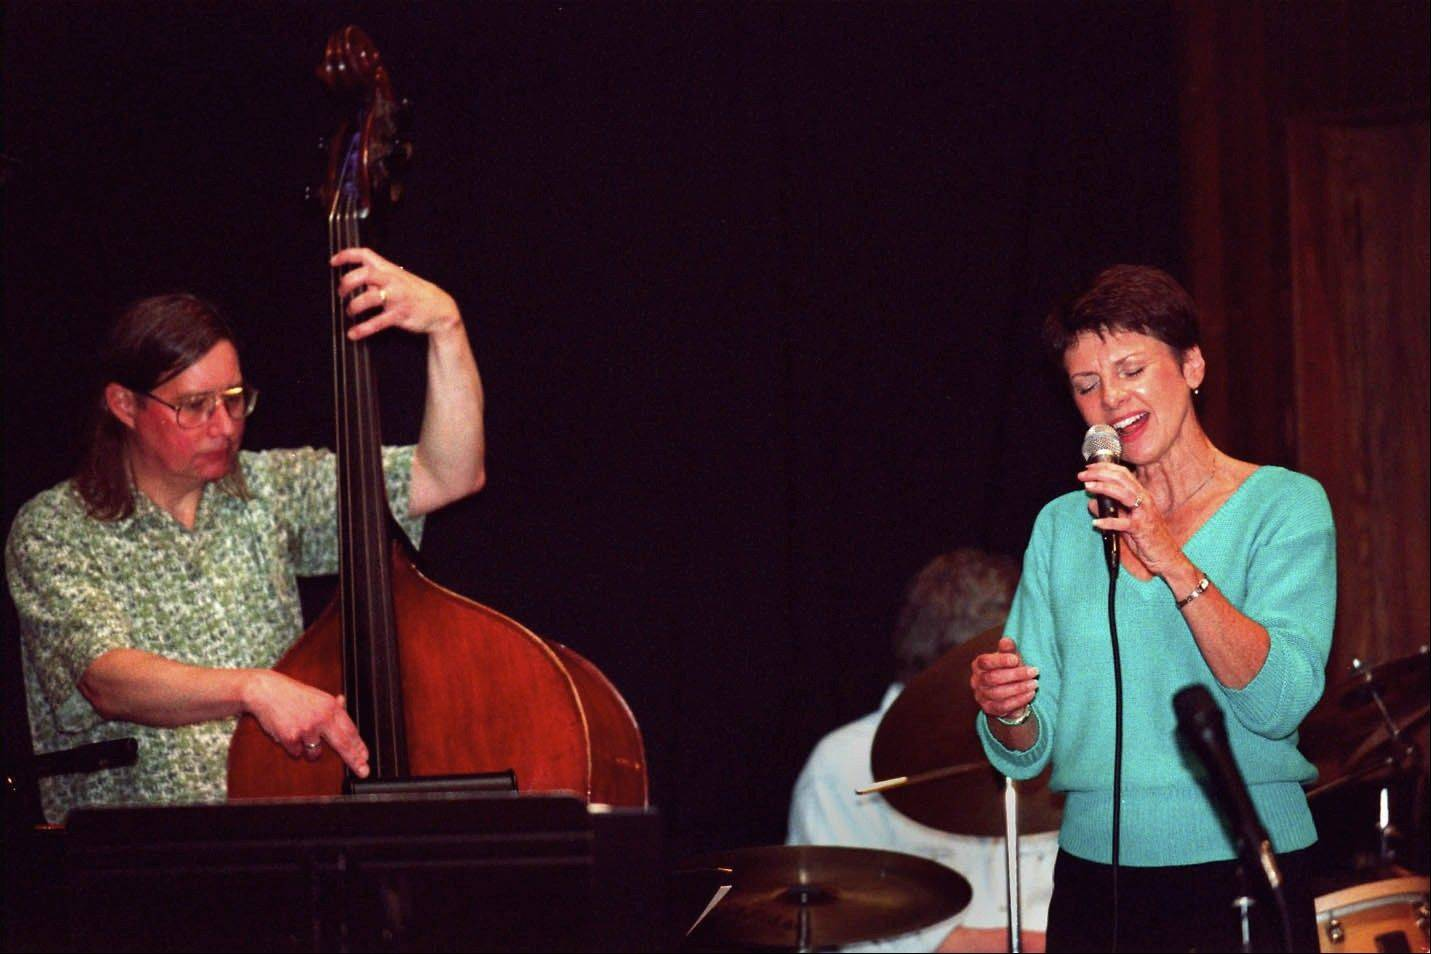 The 24th annual Hot Jazz — 6 Cool Nites jazz concert series, in conjunction with the Janice Borla Vocal Jazz Camp, will take place at North Central College July 21-27.